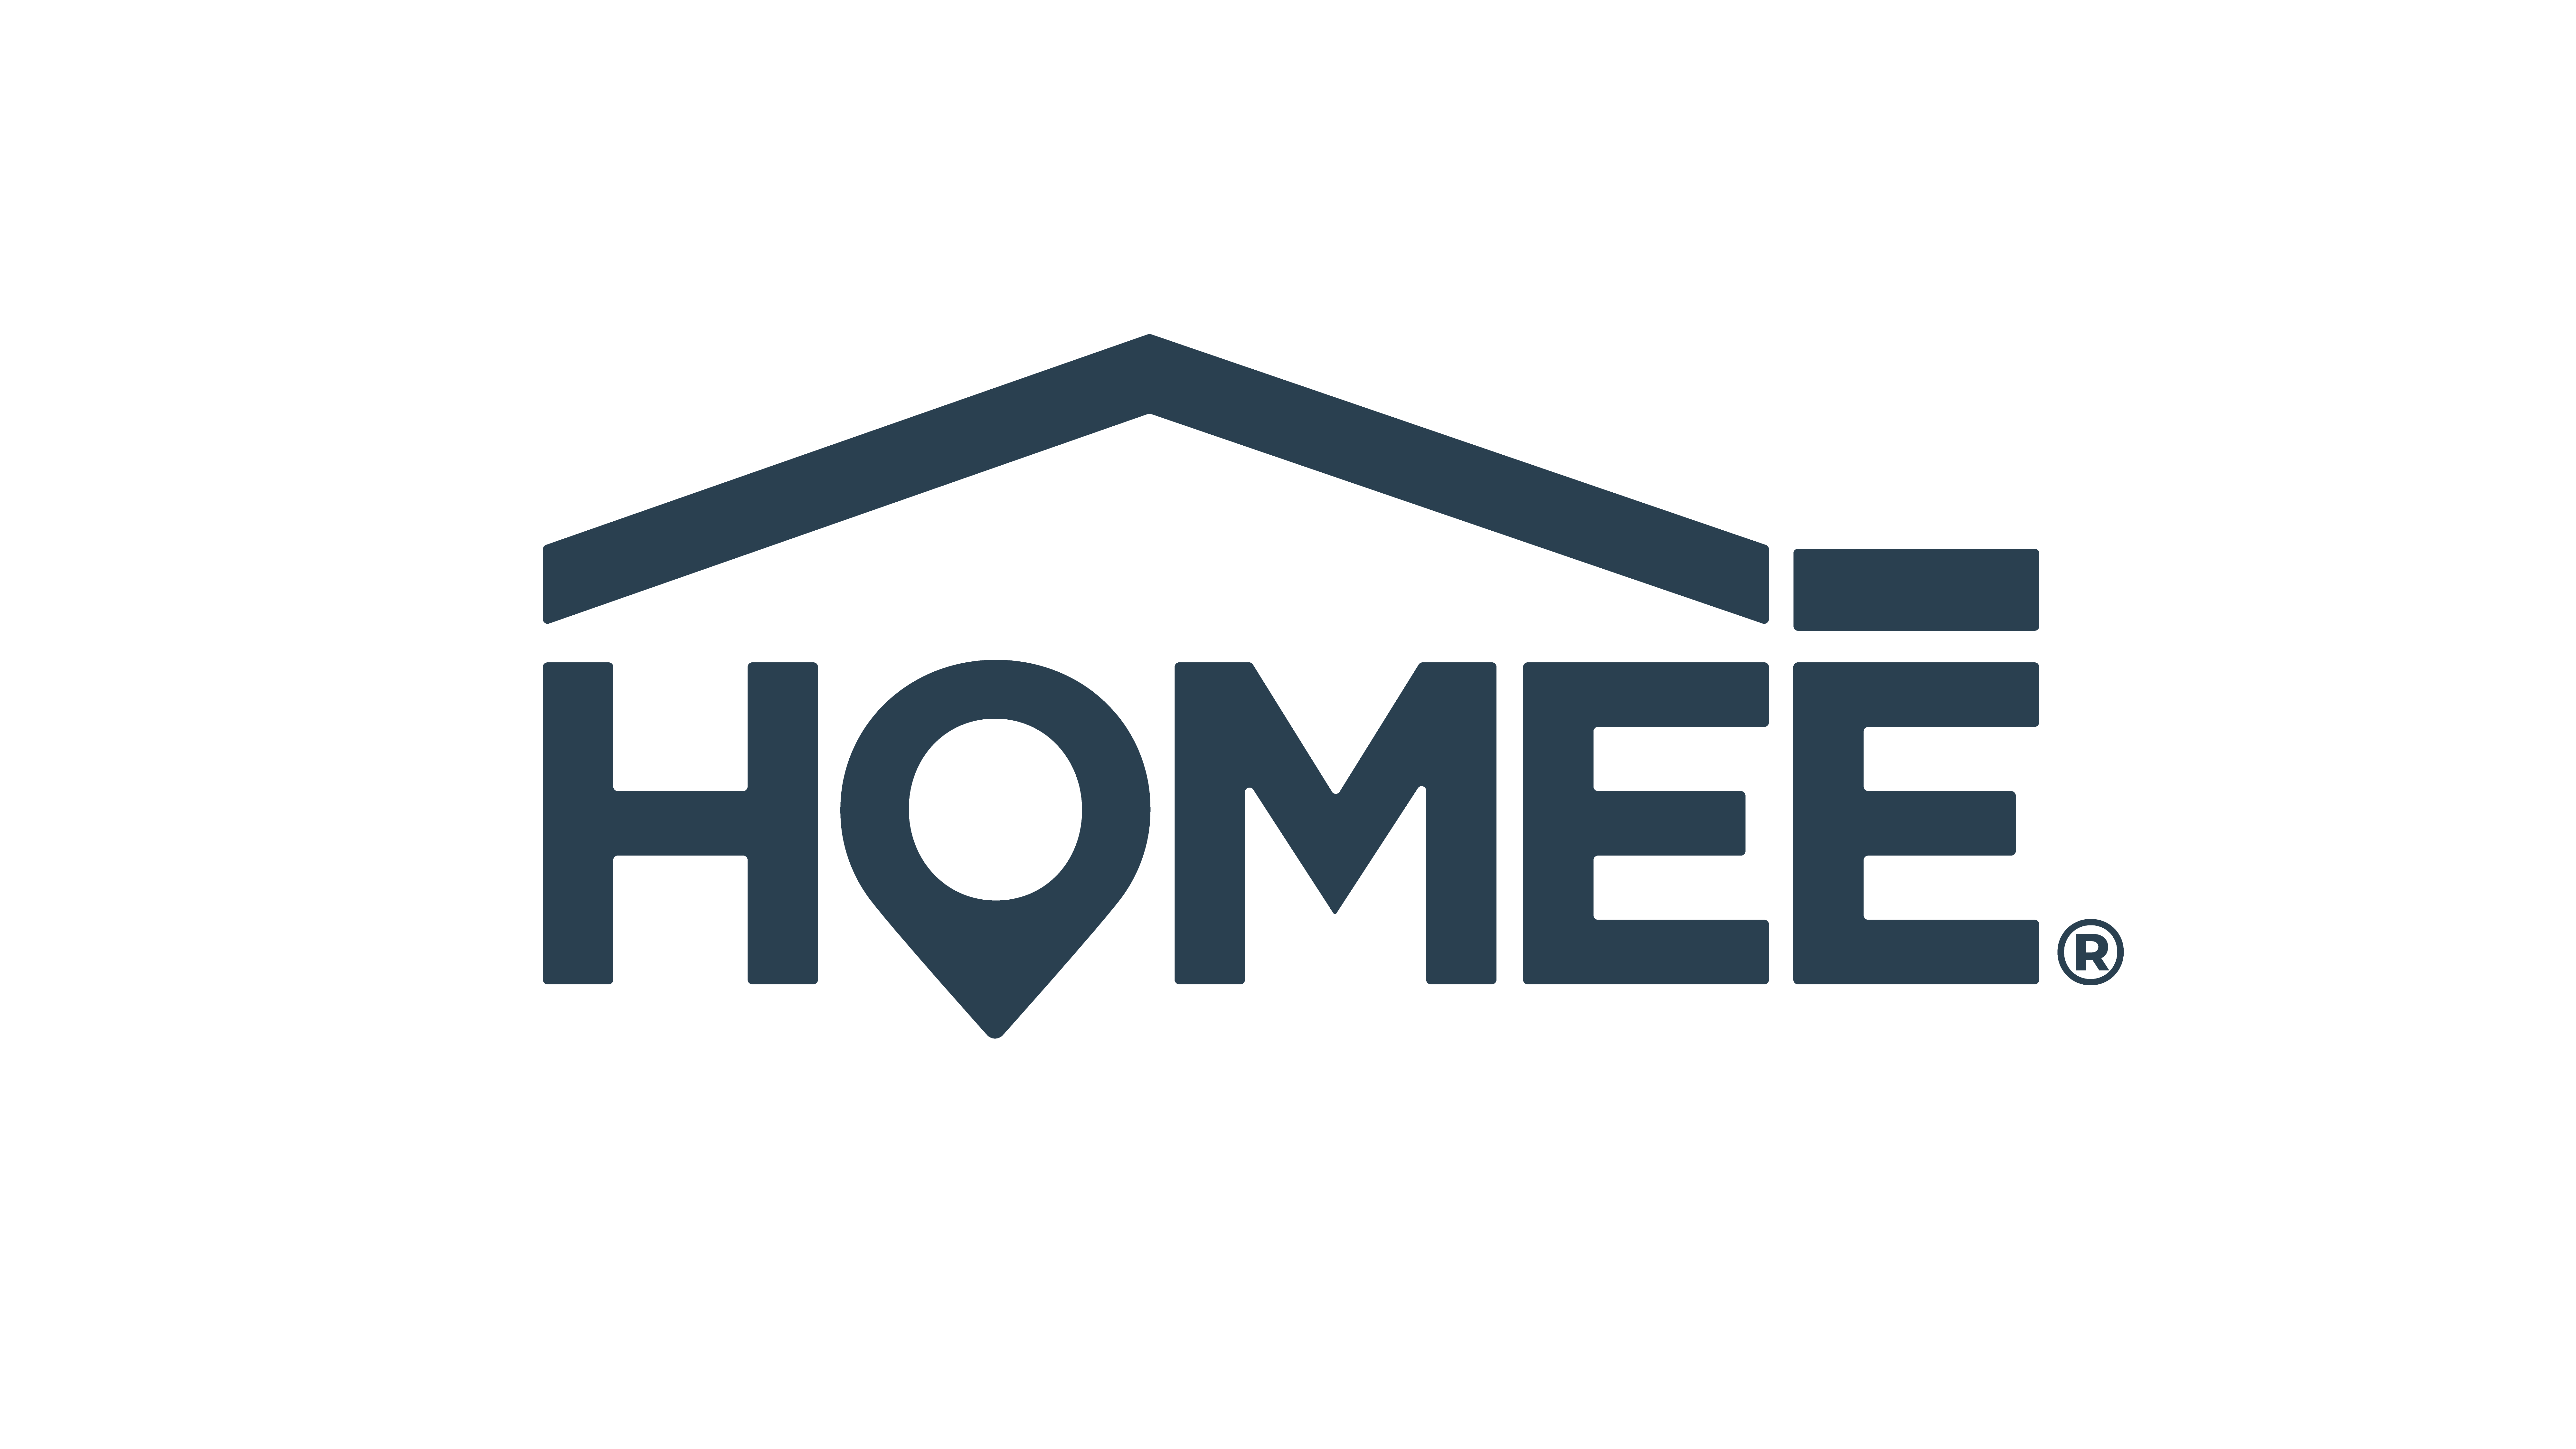 HOMEE Secures $15 Million Series B Financing